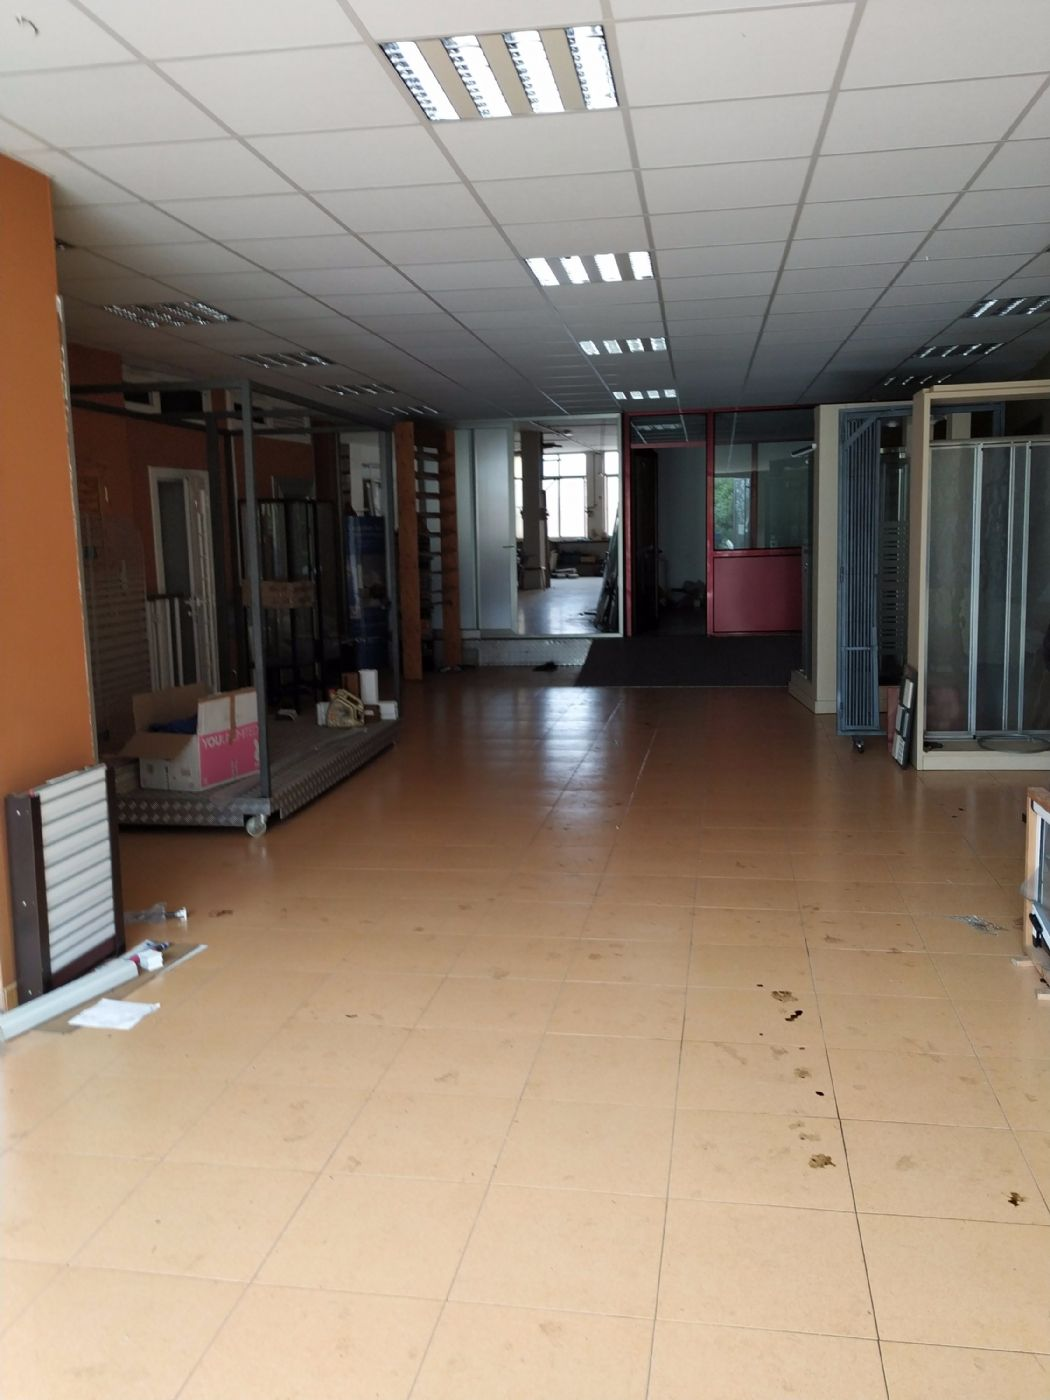 Local Comercial en Carrer salvador espriu, sn. Local comercial inmejorable